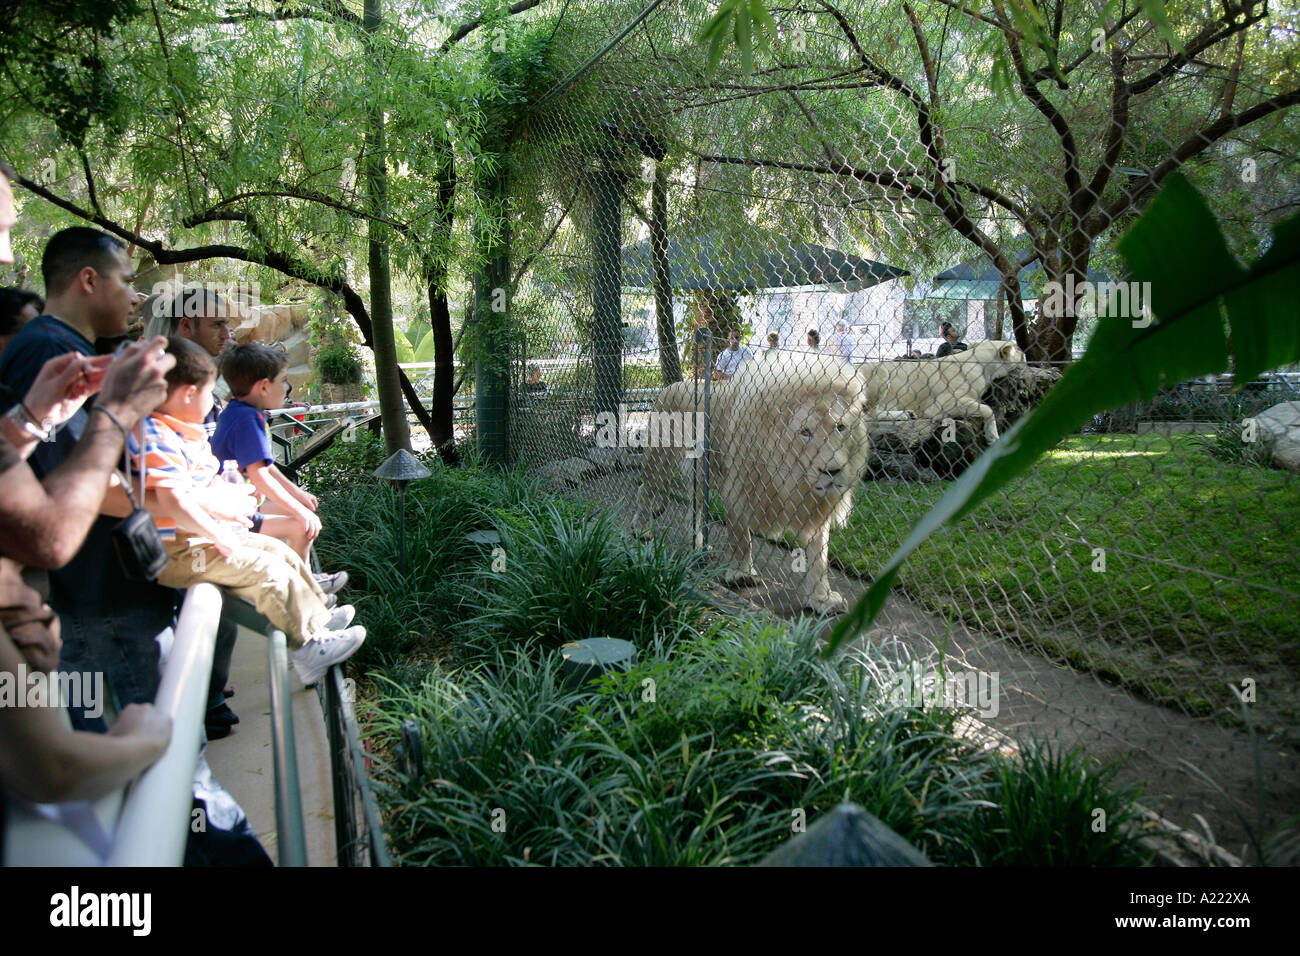 Lion Siegfried Roy S Secret Garden Dolphin Habitat Las Vegas Nevada Stock Photo Royalty Free